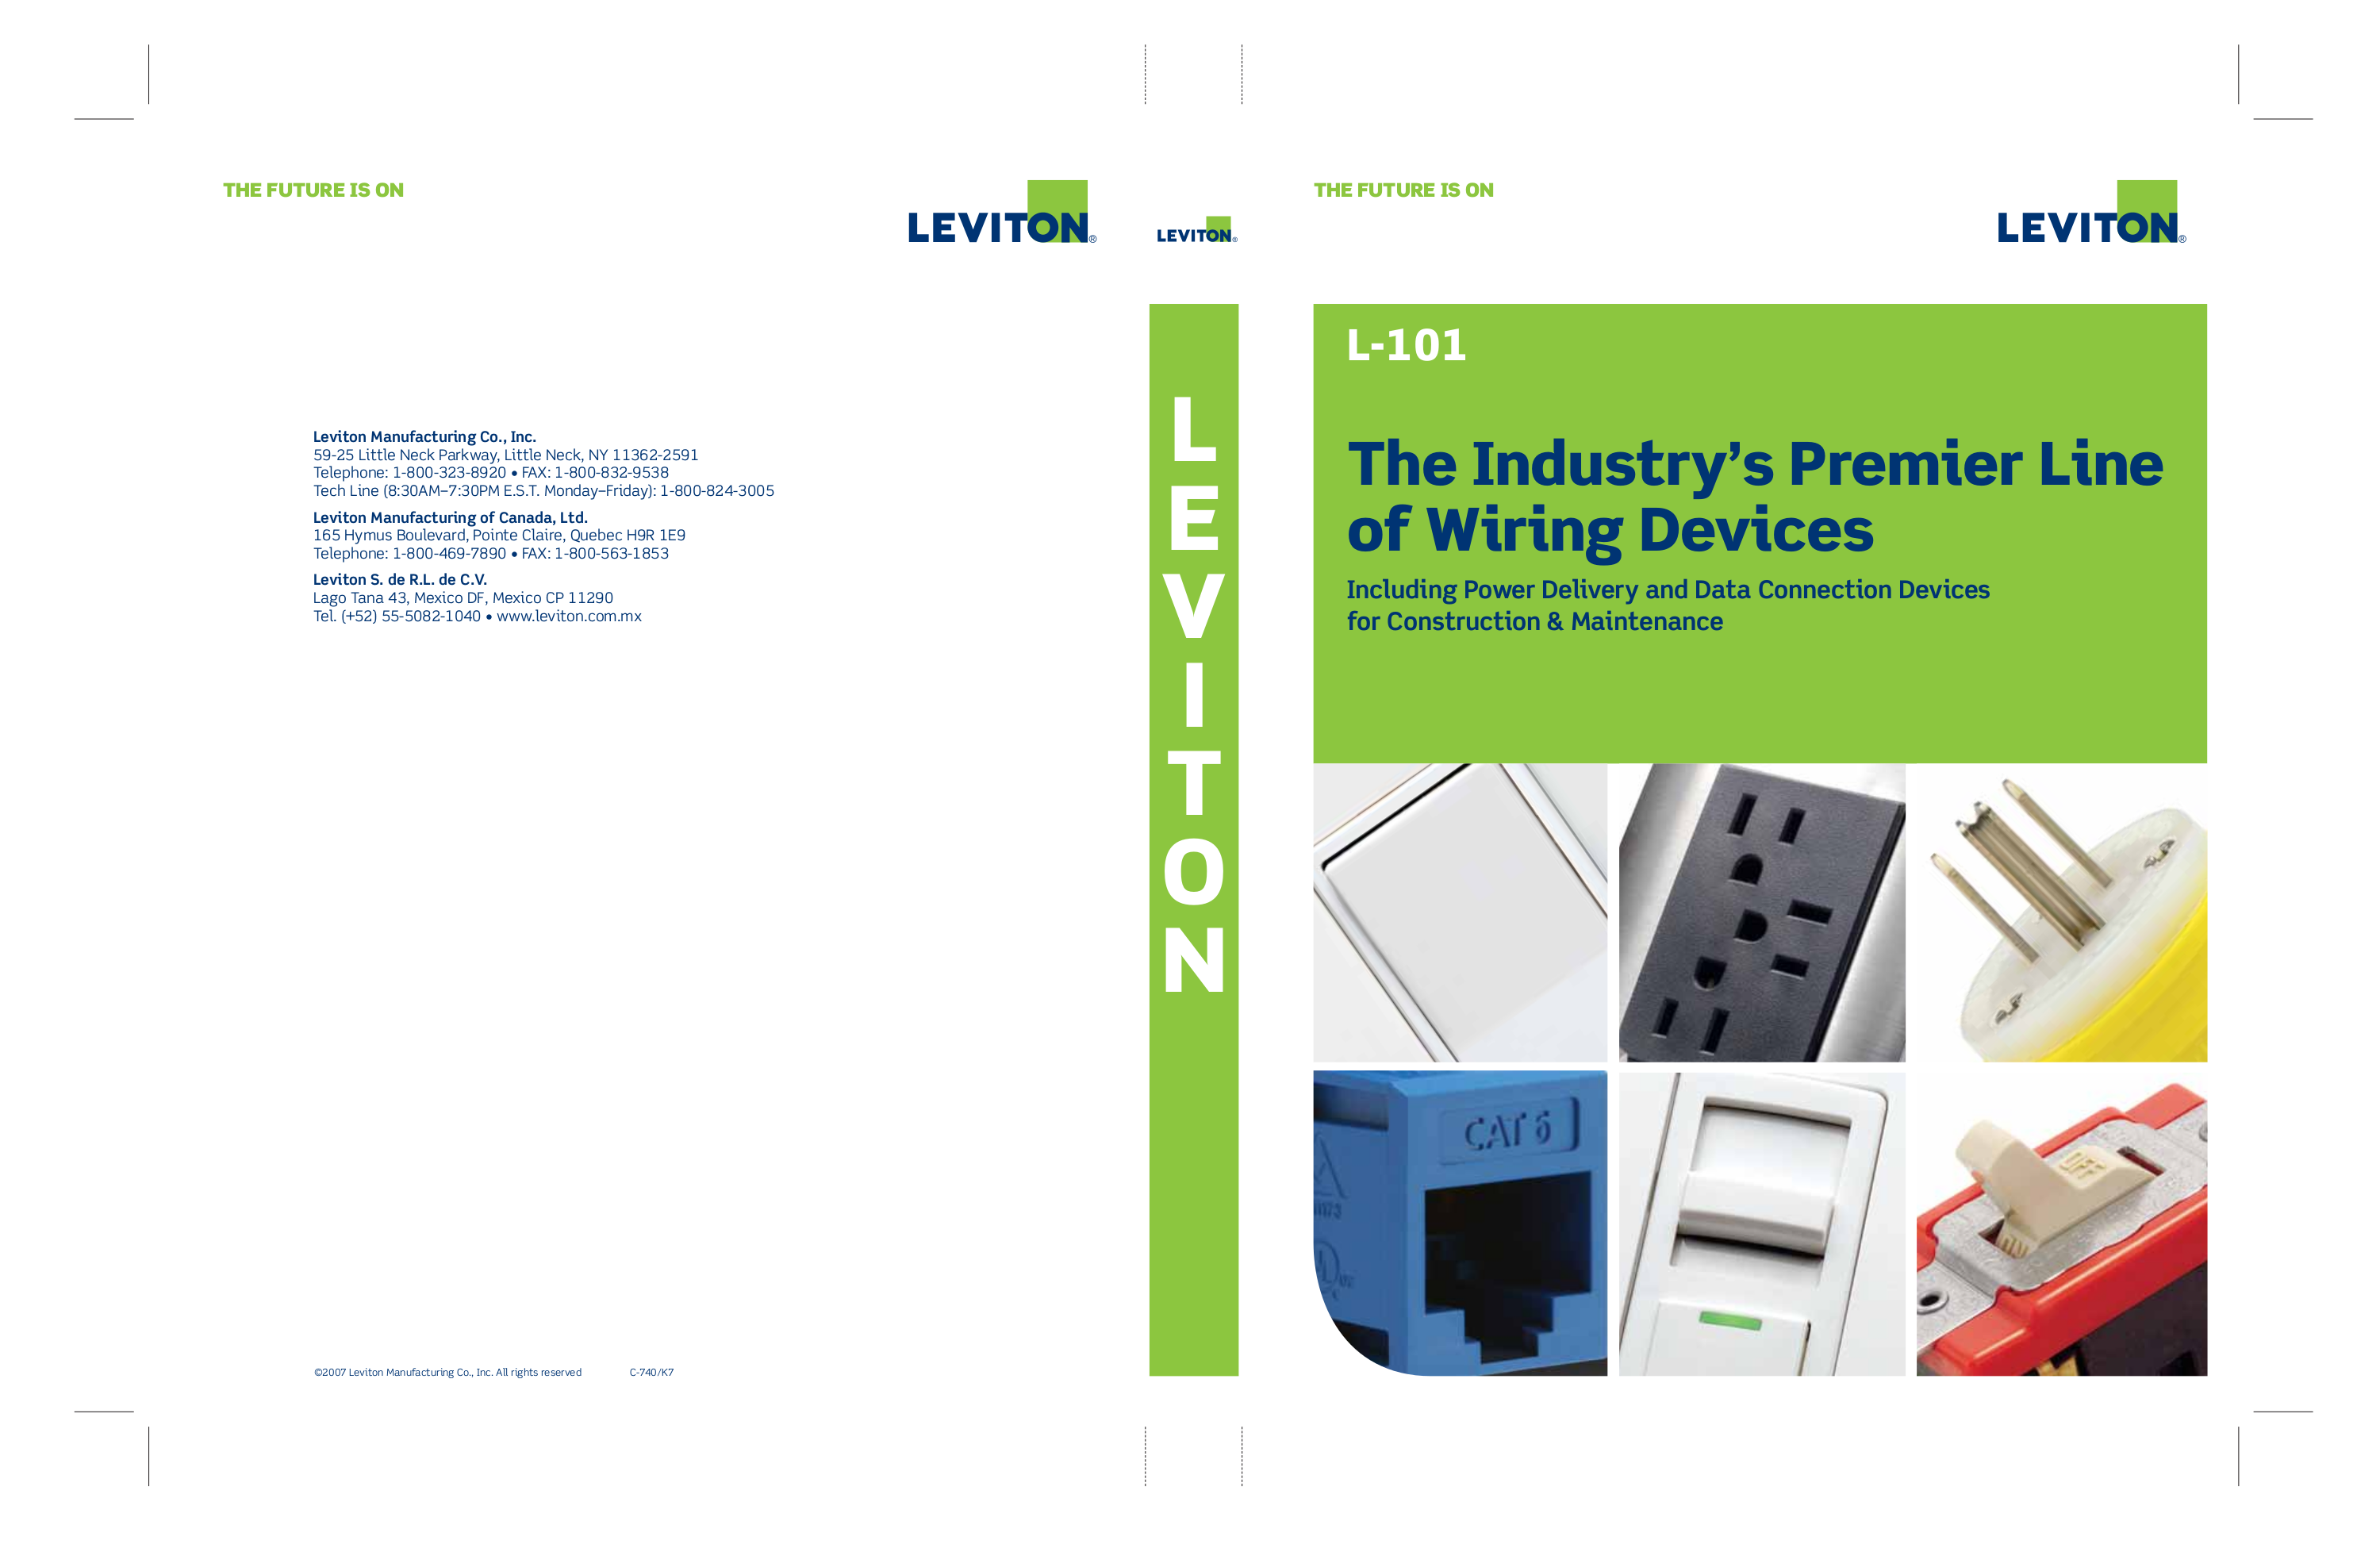 pdf for Leviton Other miniZ mZd20-C02 Harvesting Controller manual